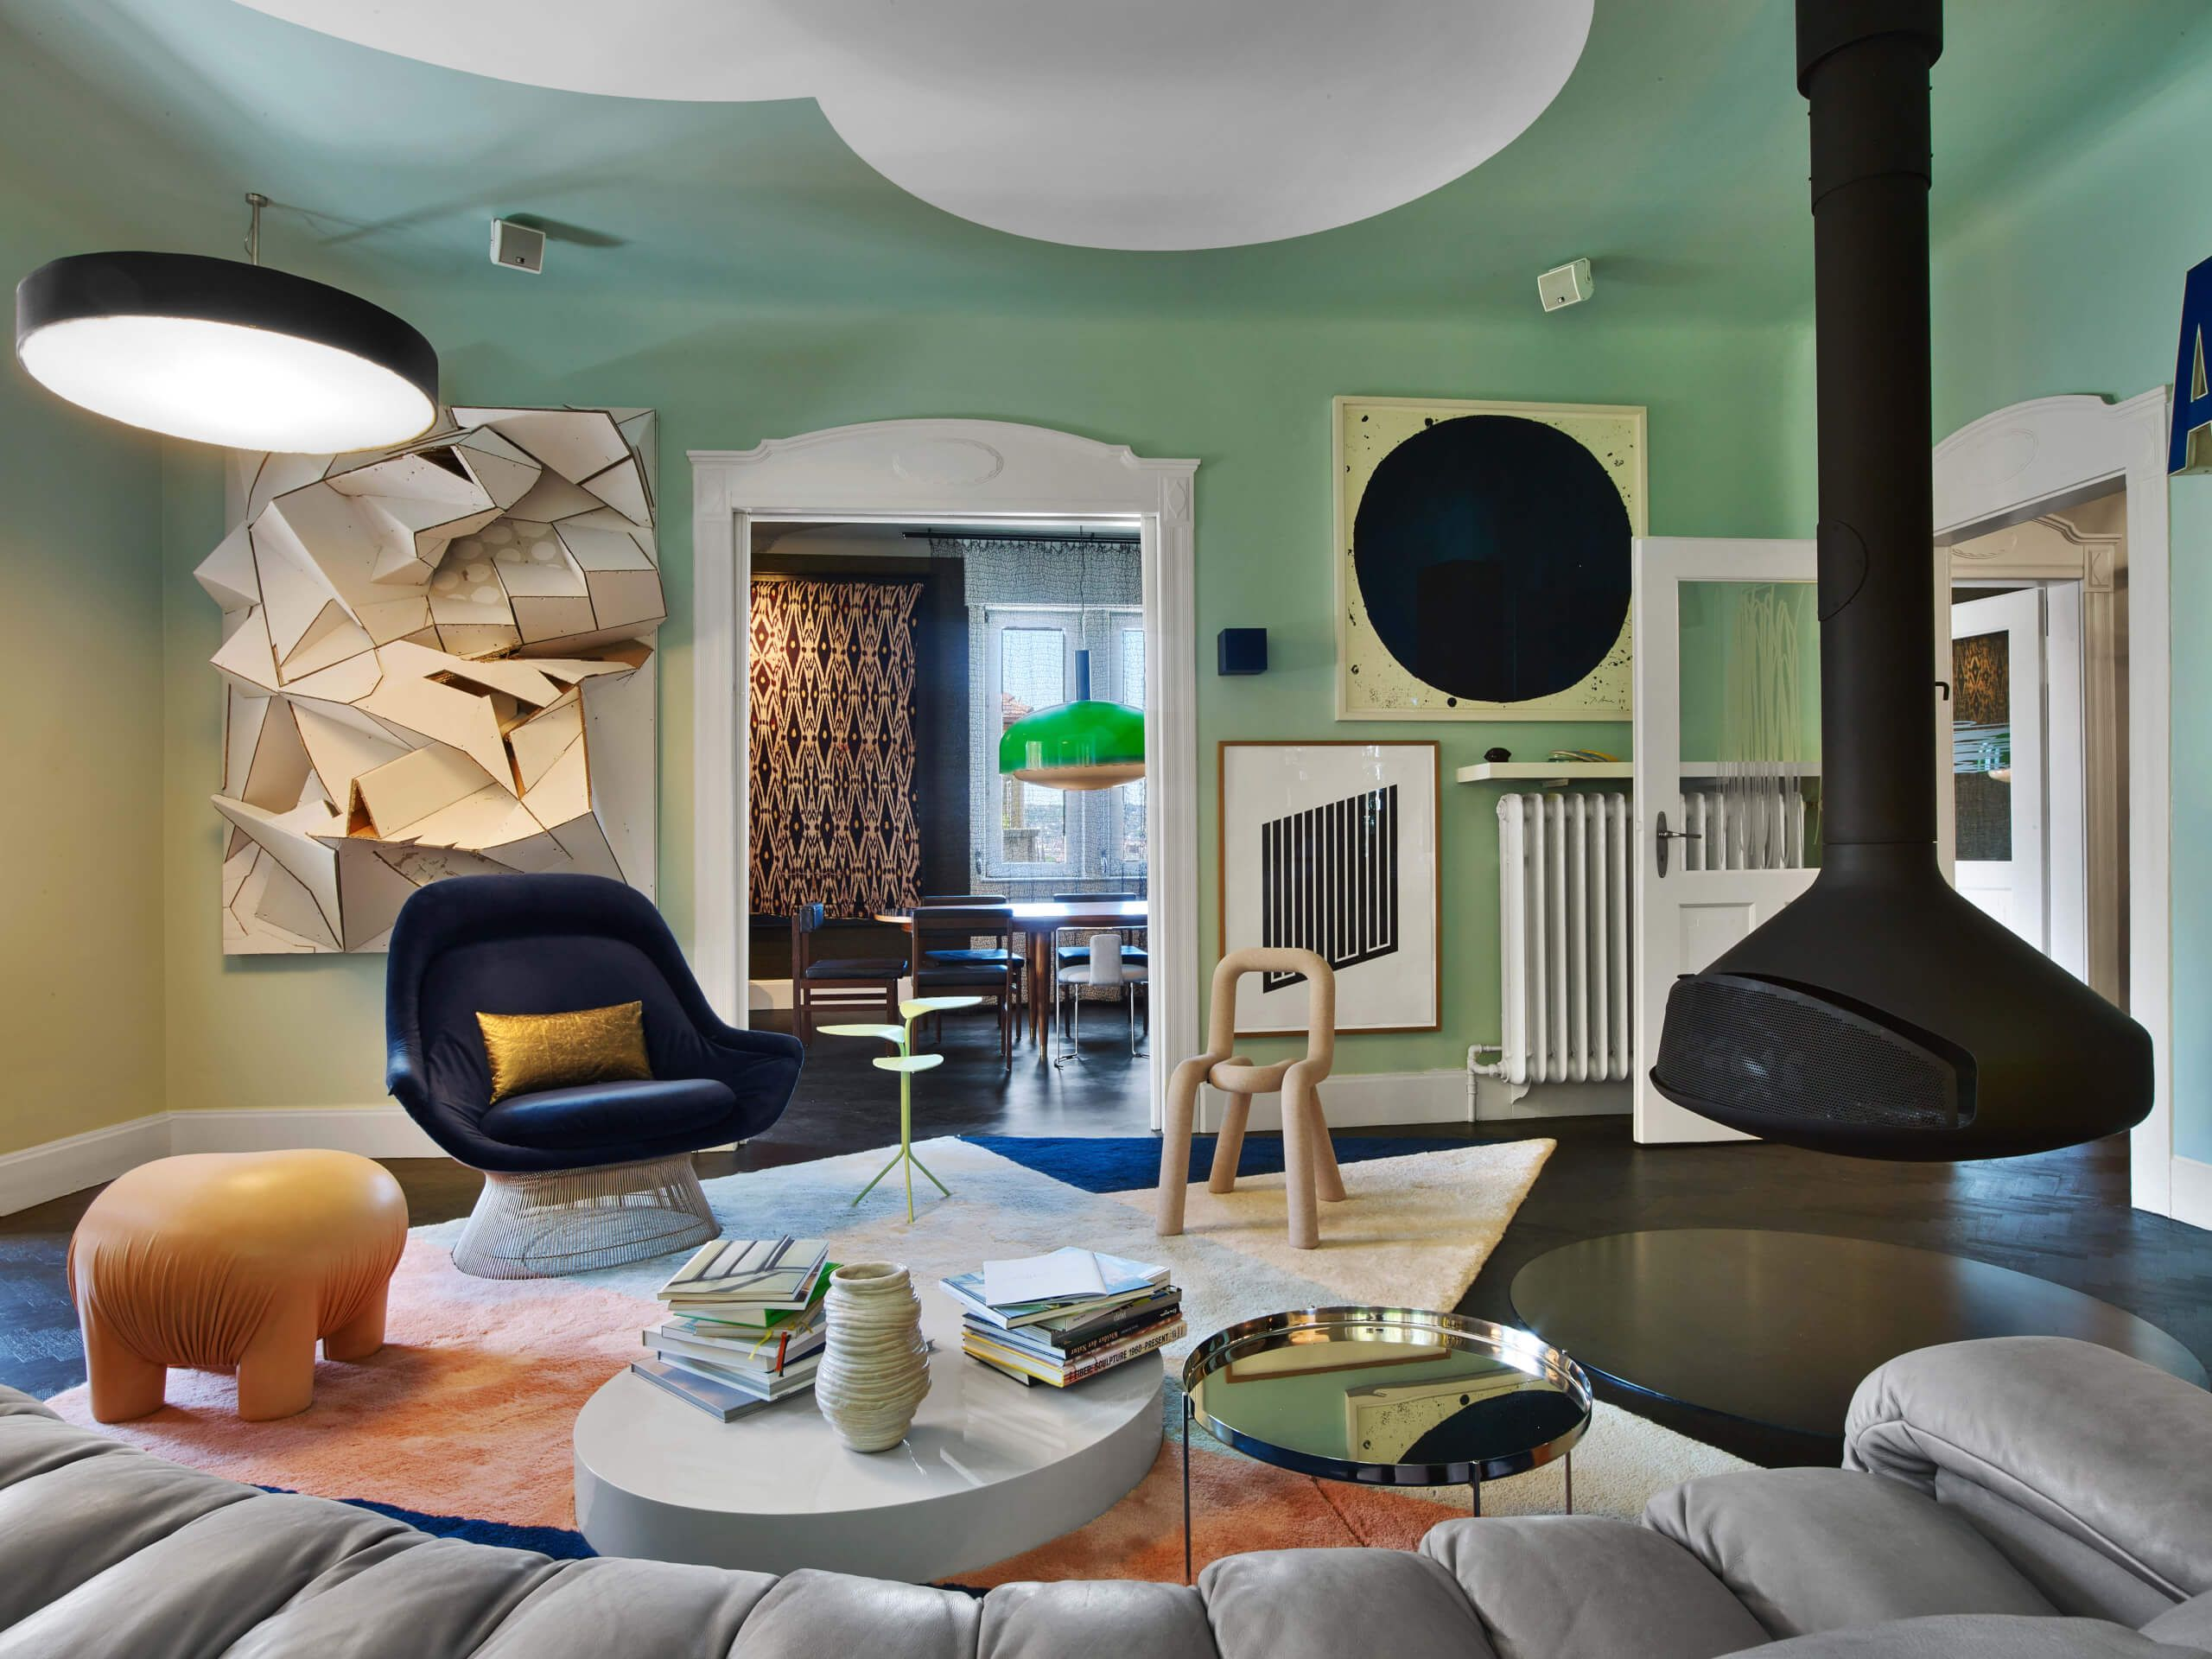 Colorful Eclectic Interior Design Is Collage Of Travels And